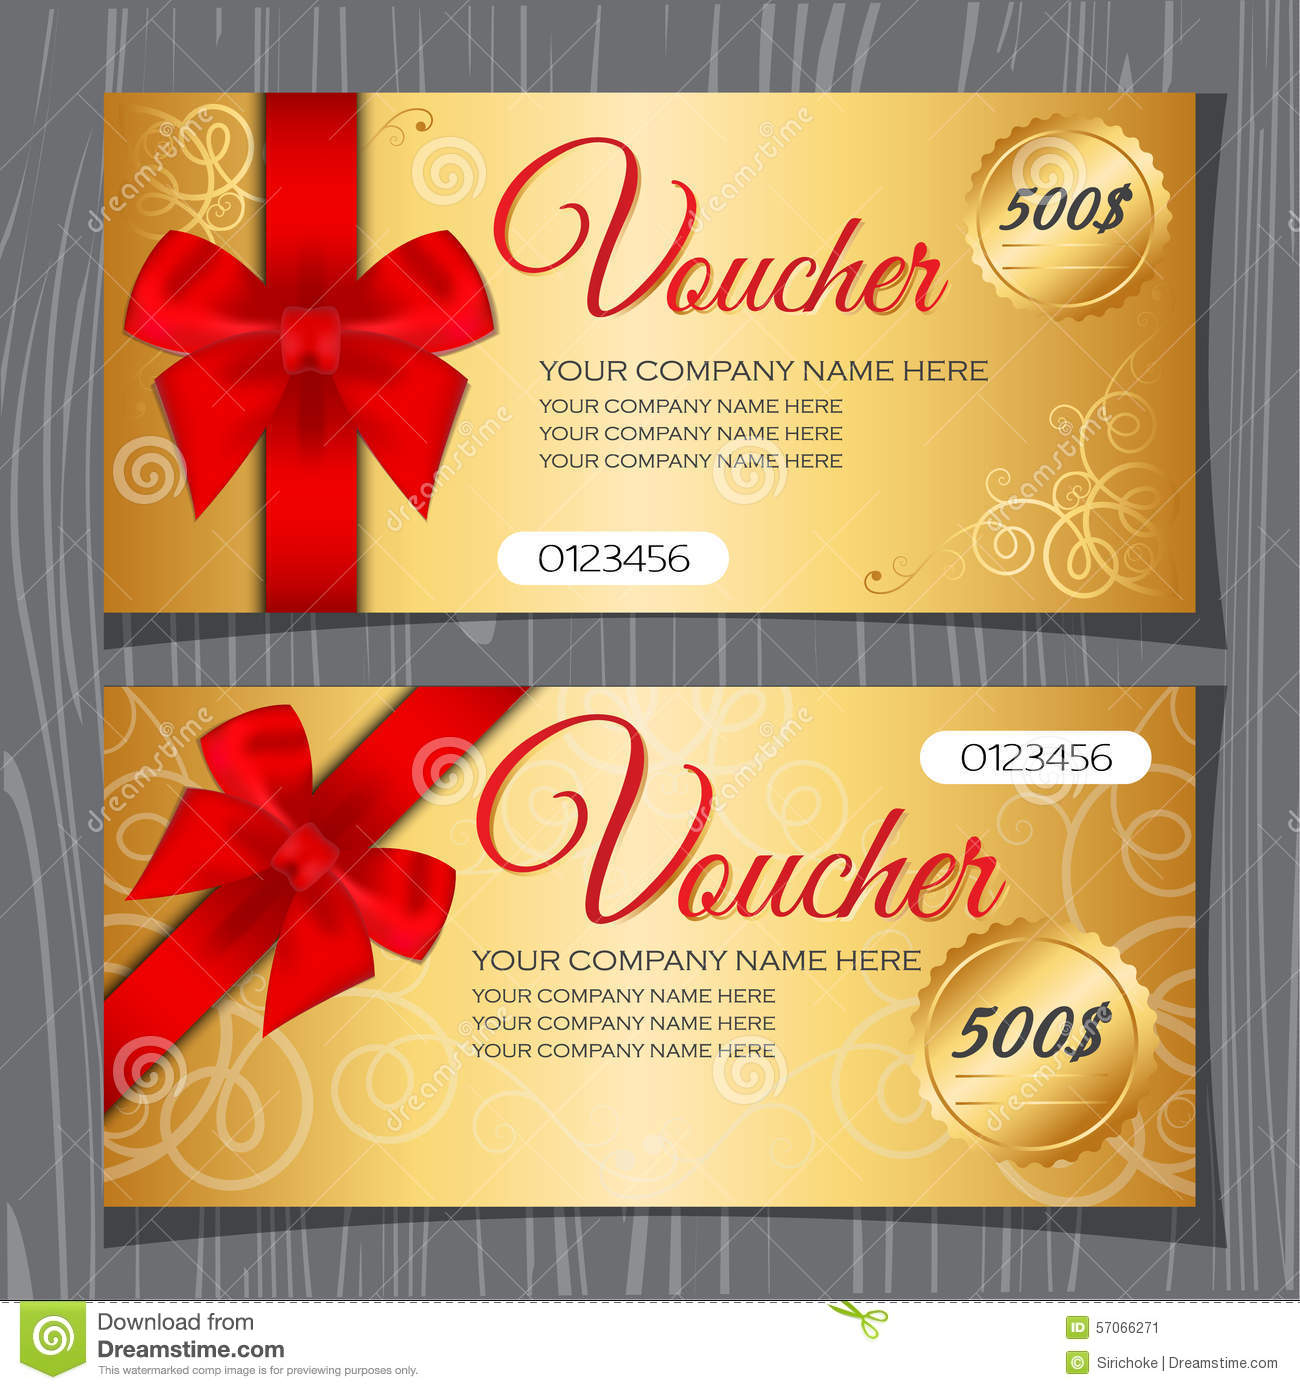 voucher template gift certificate stock photo image  voucher template gift certificate